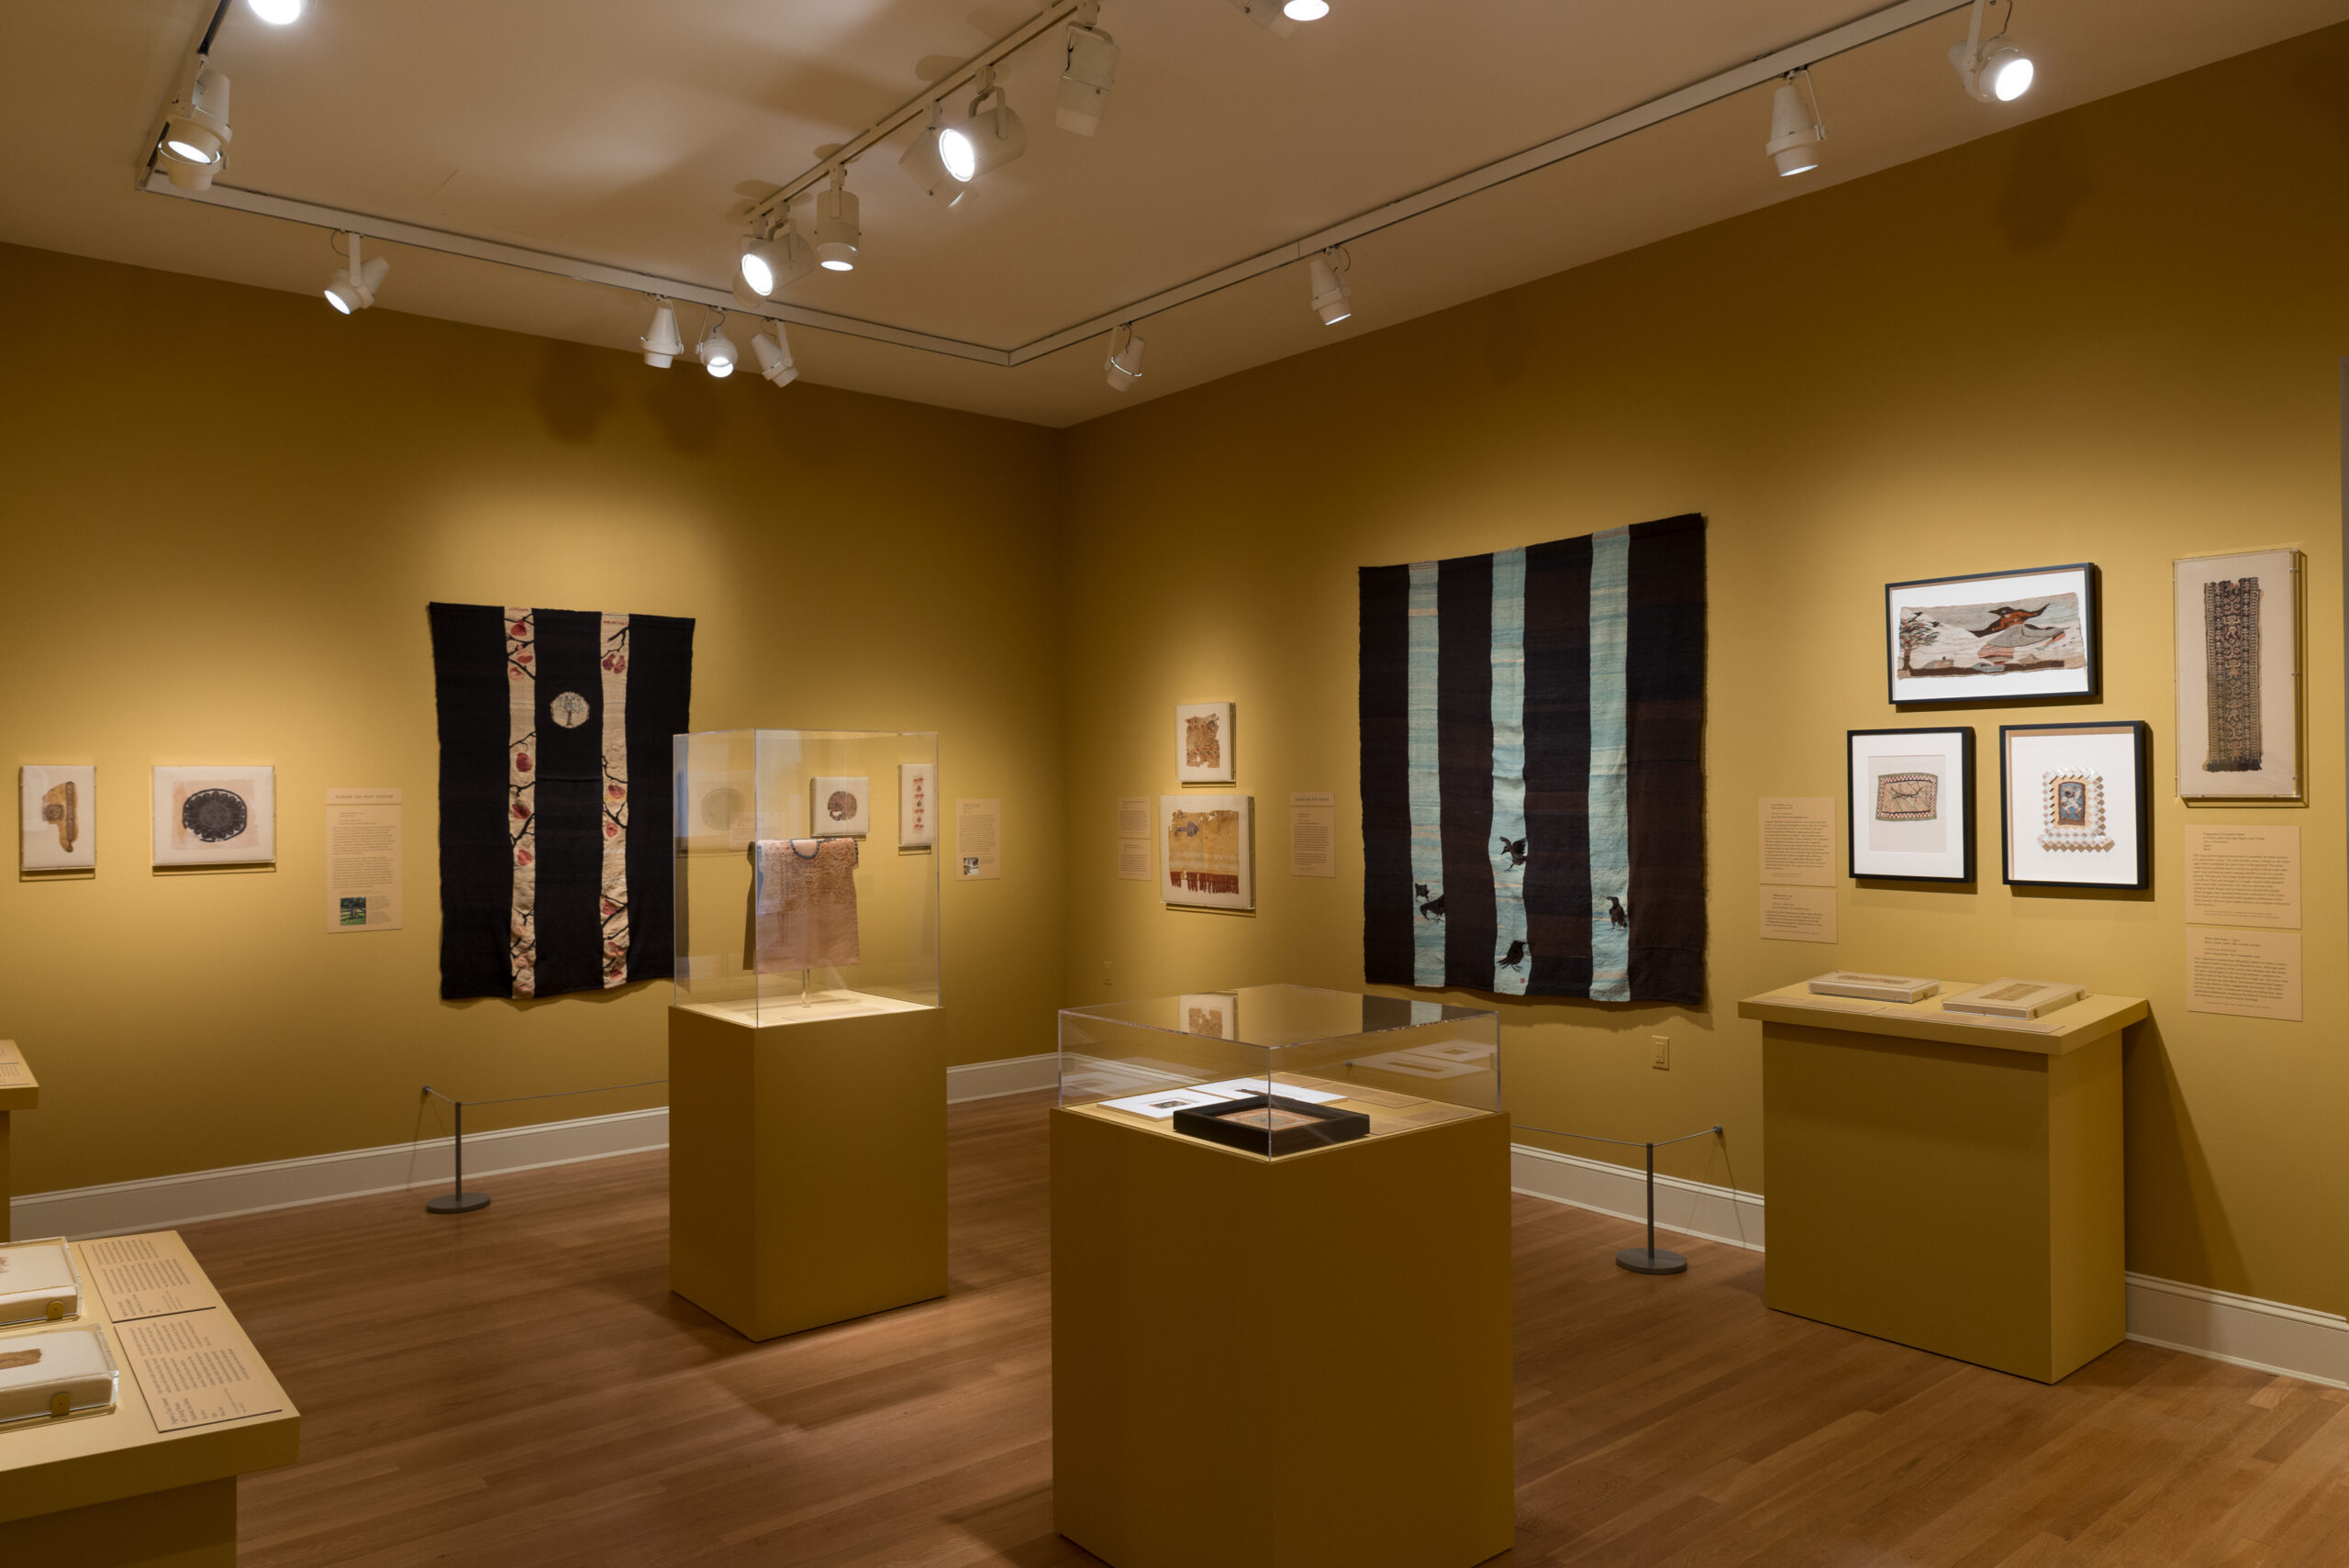 Installation view of Timeless Weft: Ancient Tapestries and The Art of Louise B. Wheatley. Photo by Mitro Hood.